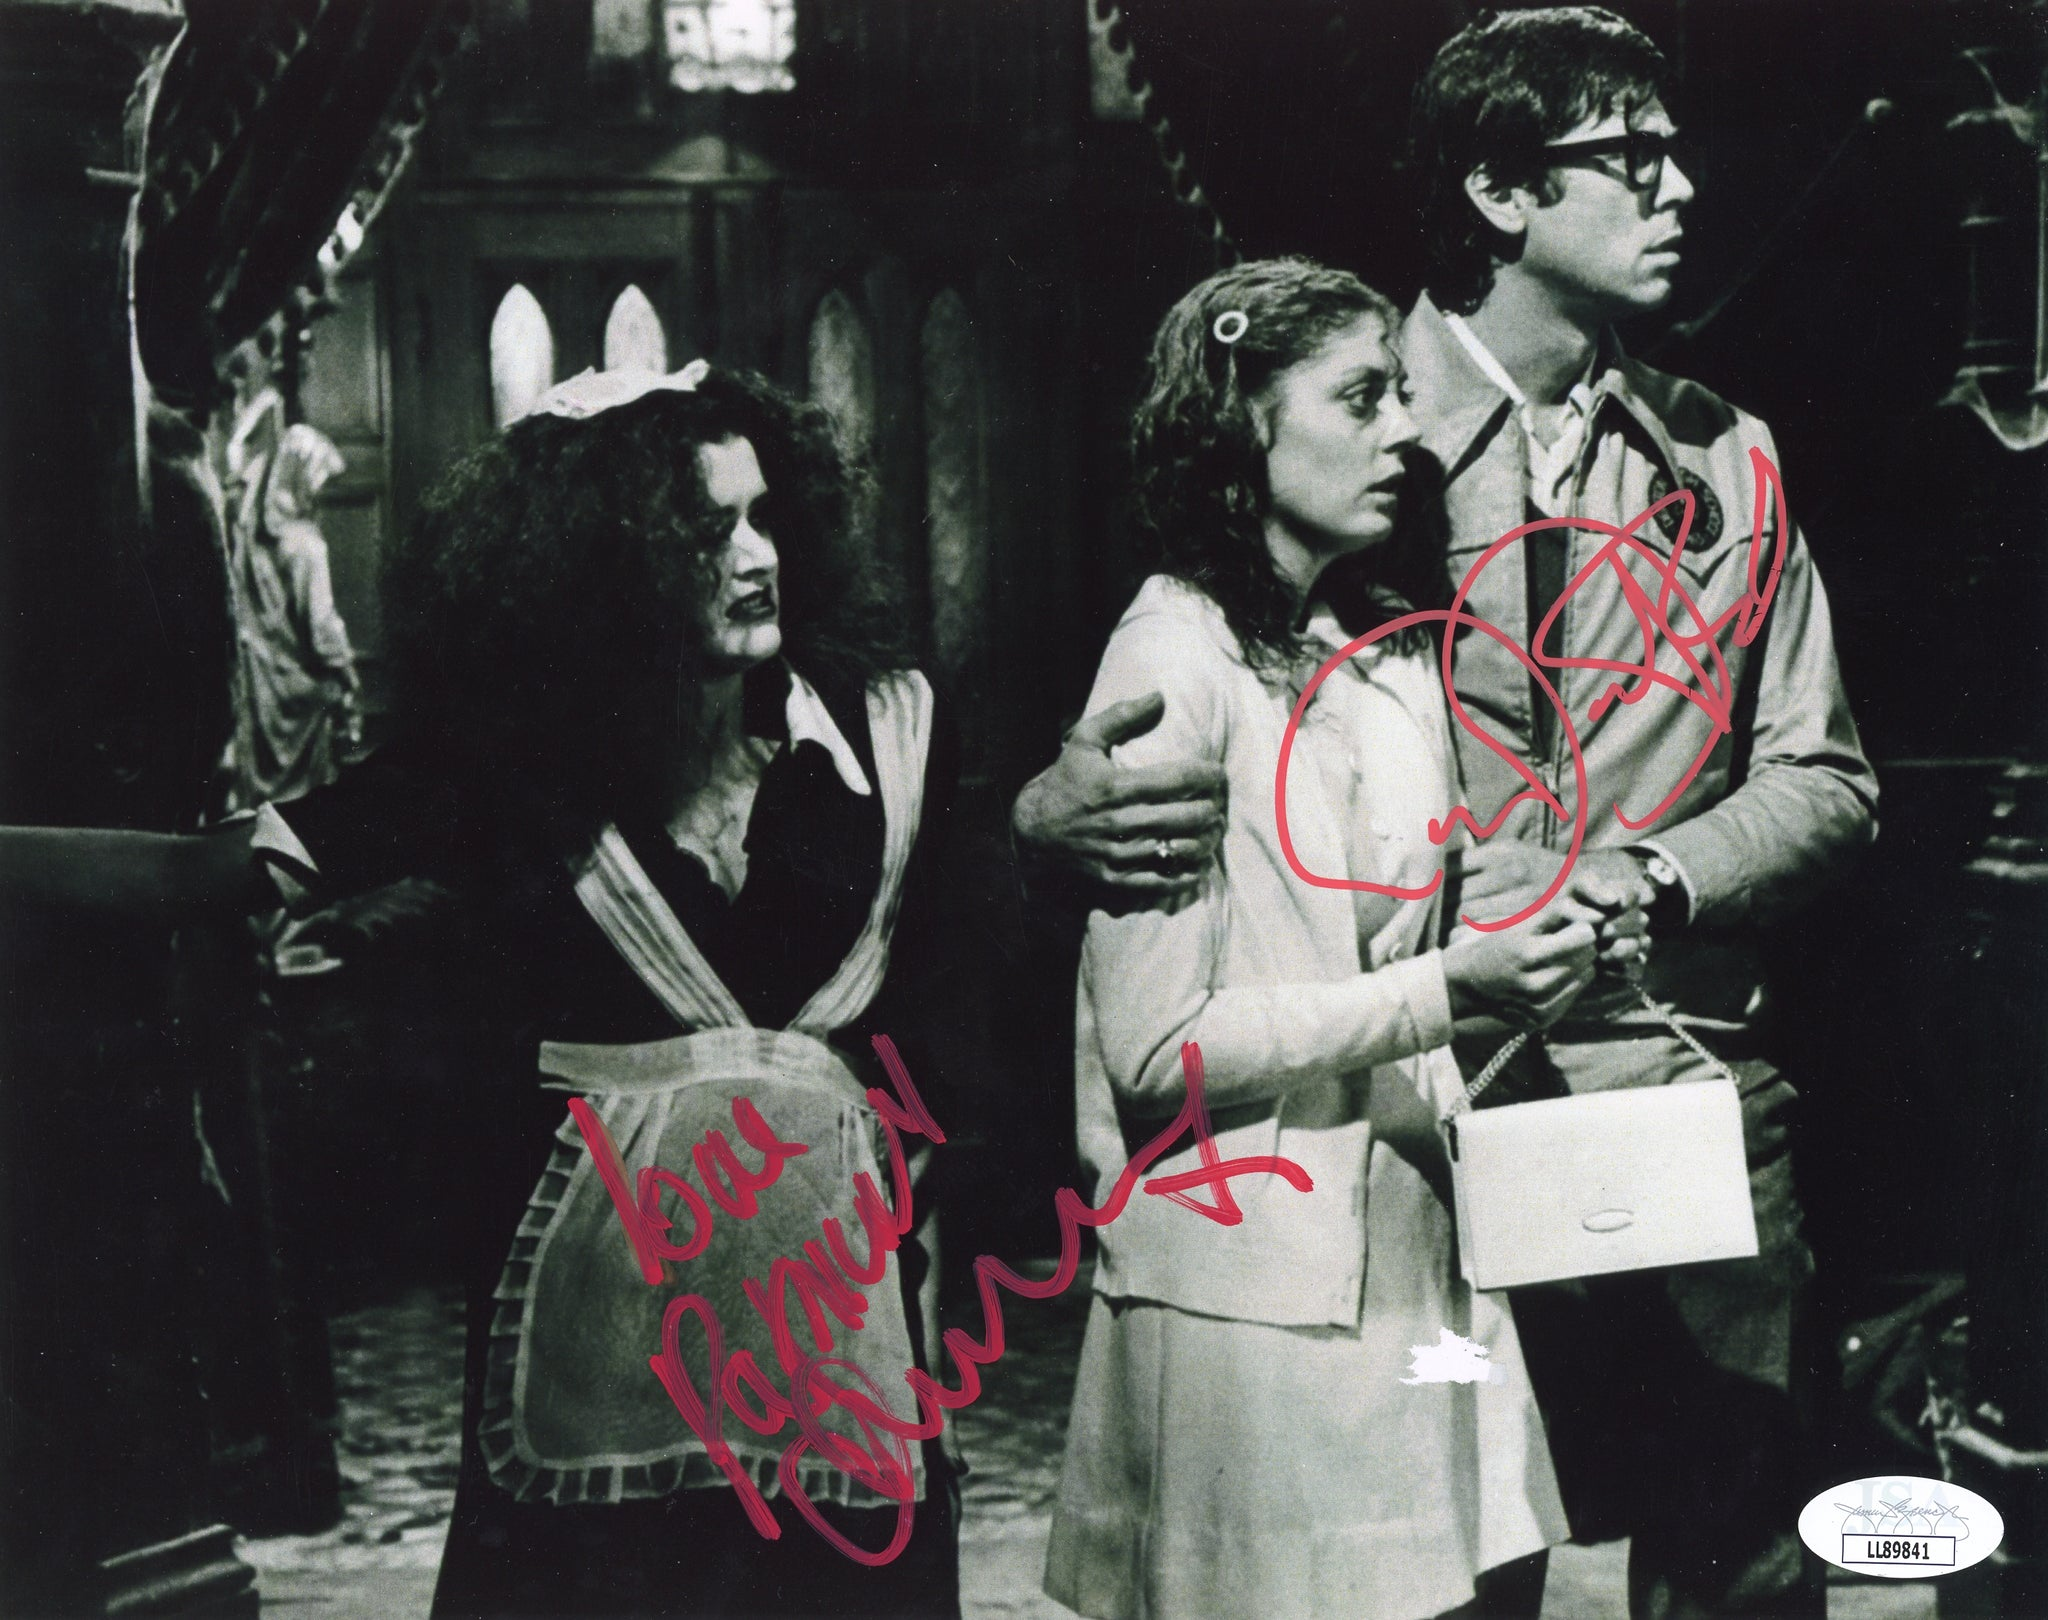 Rocky Horror Picture Show RHPS 8x10 Photo Signed Autograph Bostwick Quinn JSA Certified COA Auto